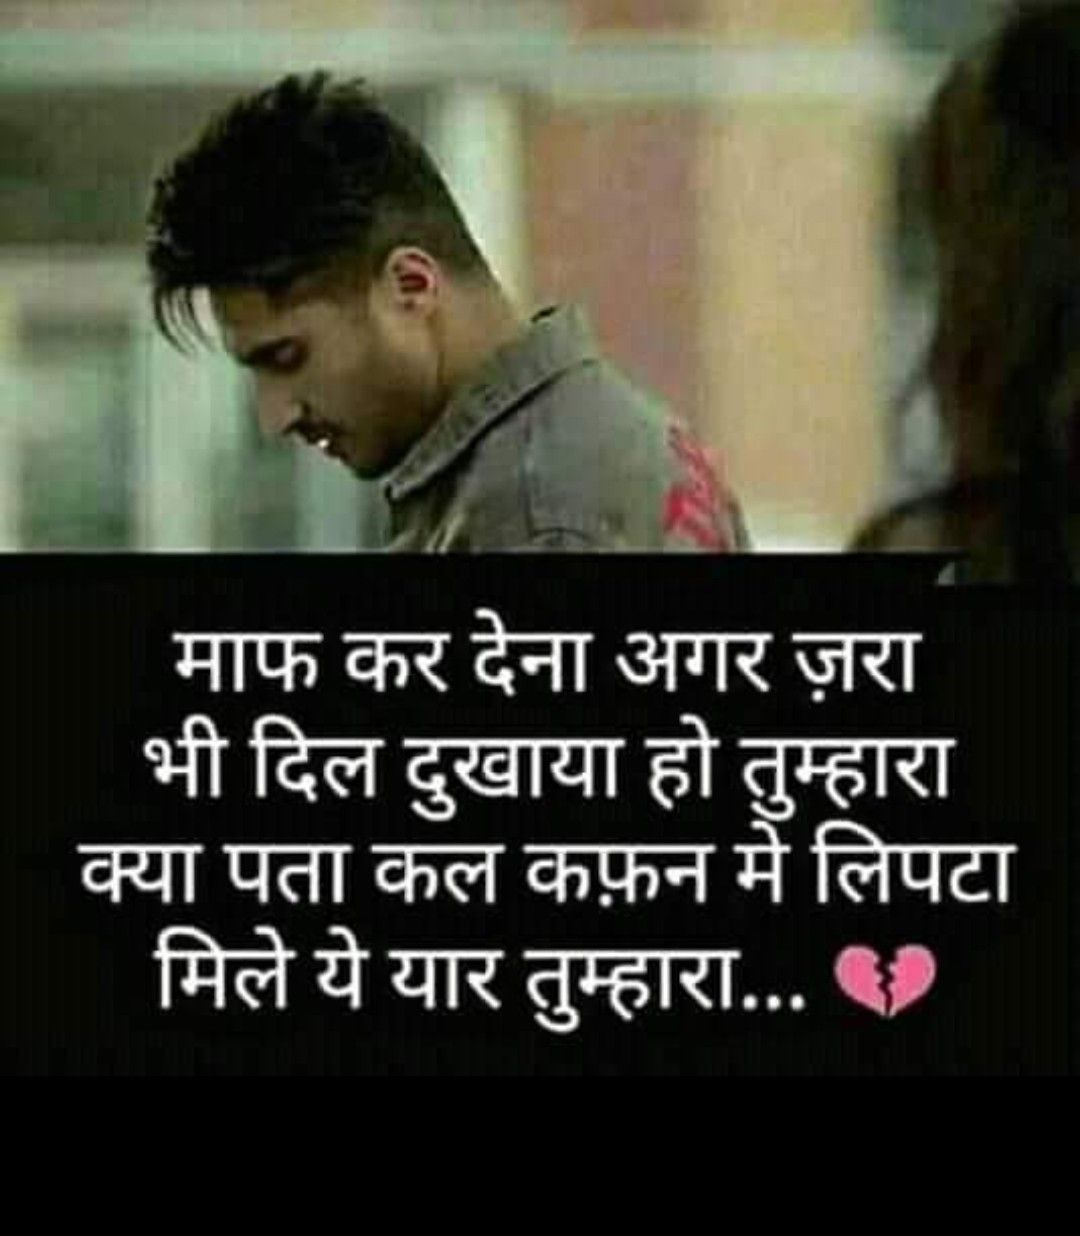 Pin By Yash Bhardwaj On Ahmad Love Breakup Quotes Feeling Loved Quotes First Love Quotes